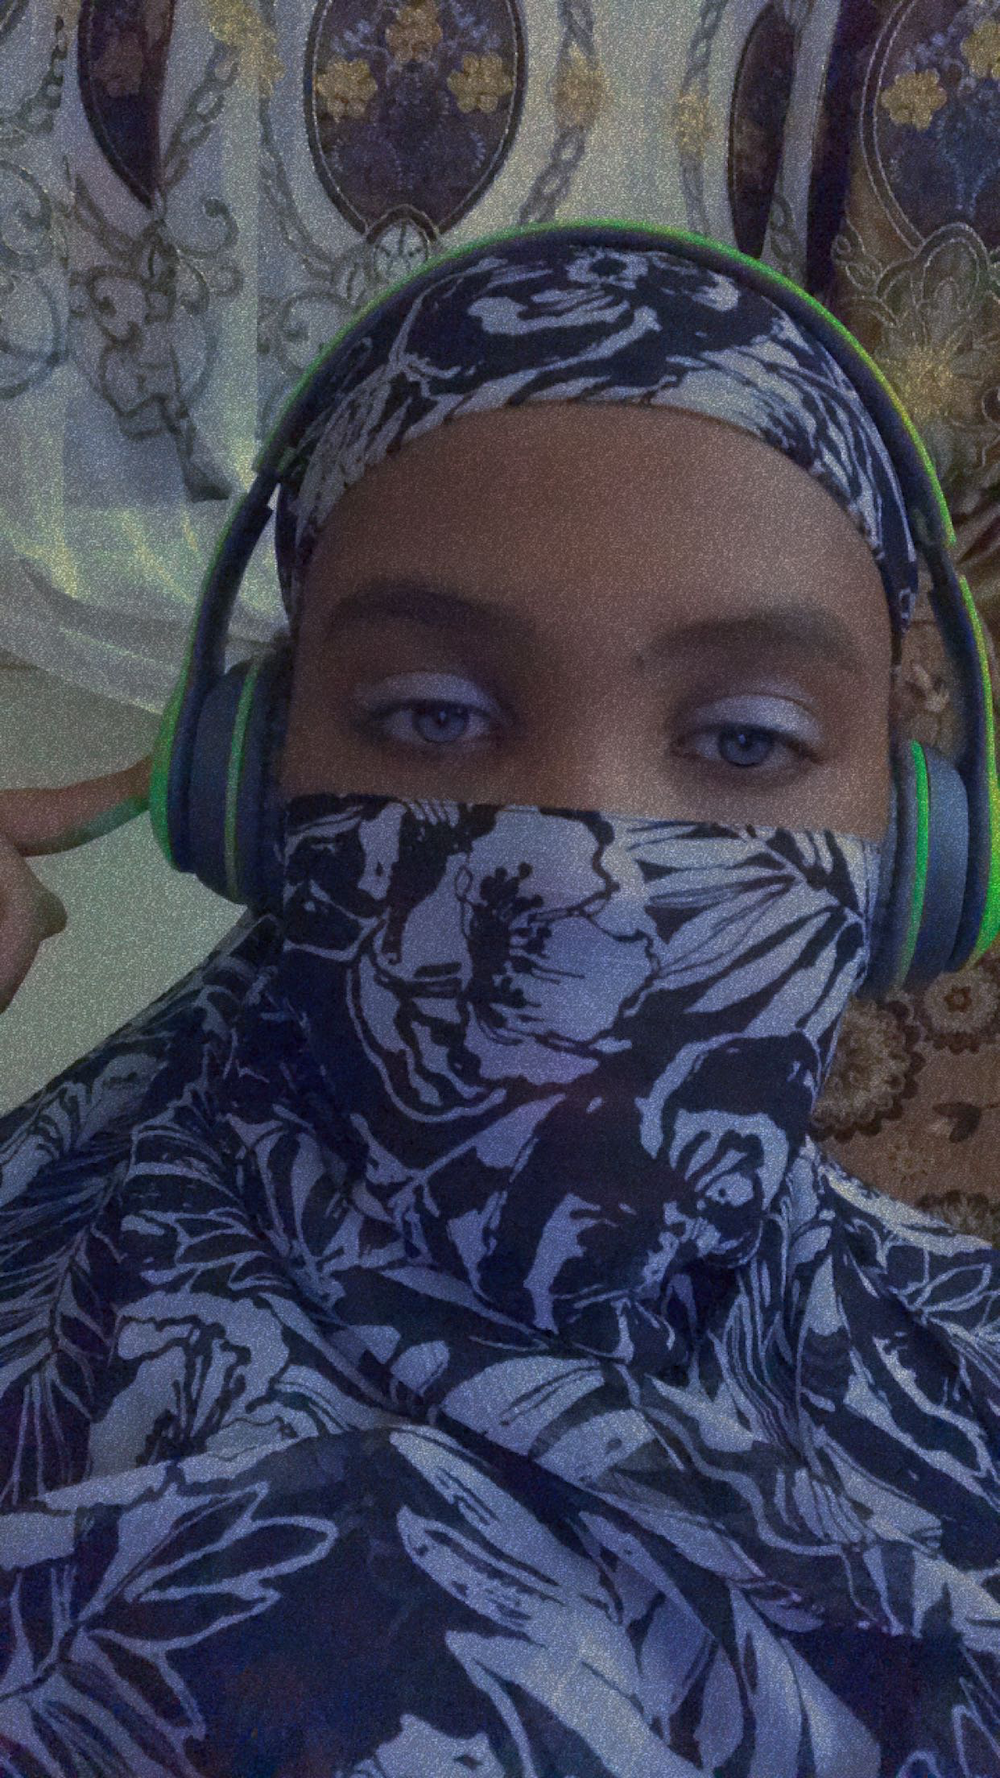 A photo of the author in their hijab, also wearing over-ear headphones. Photo taken by the author.